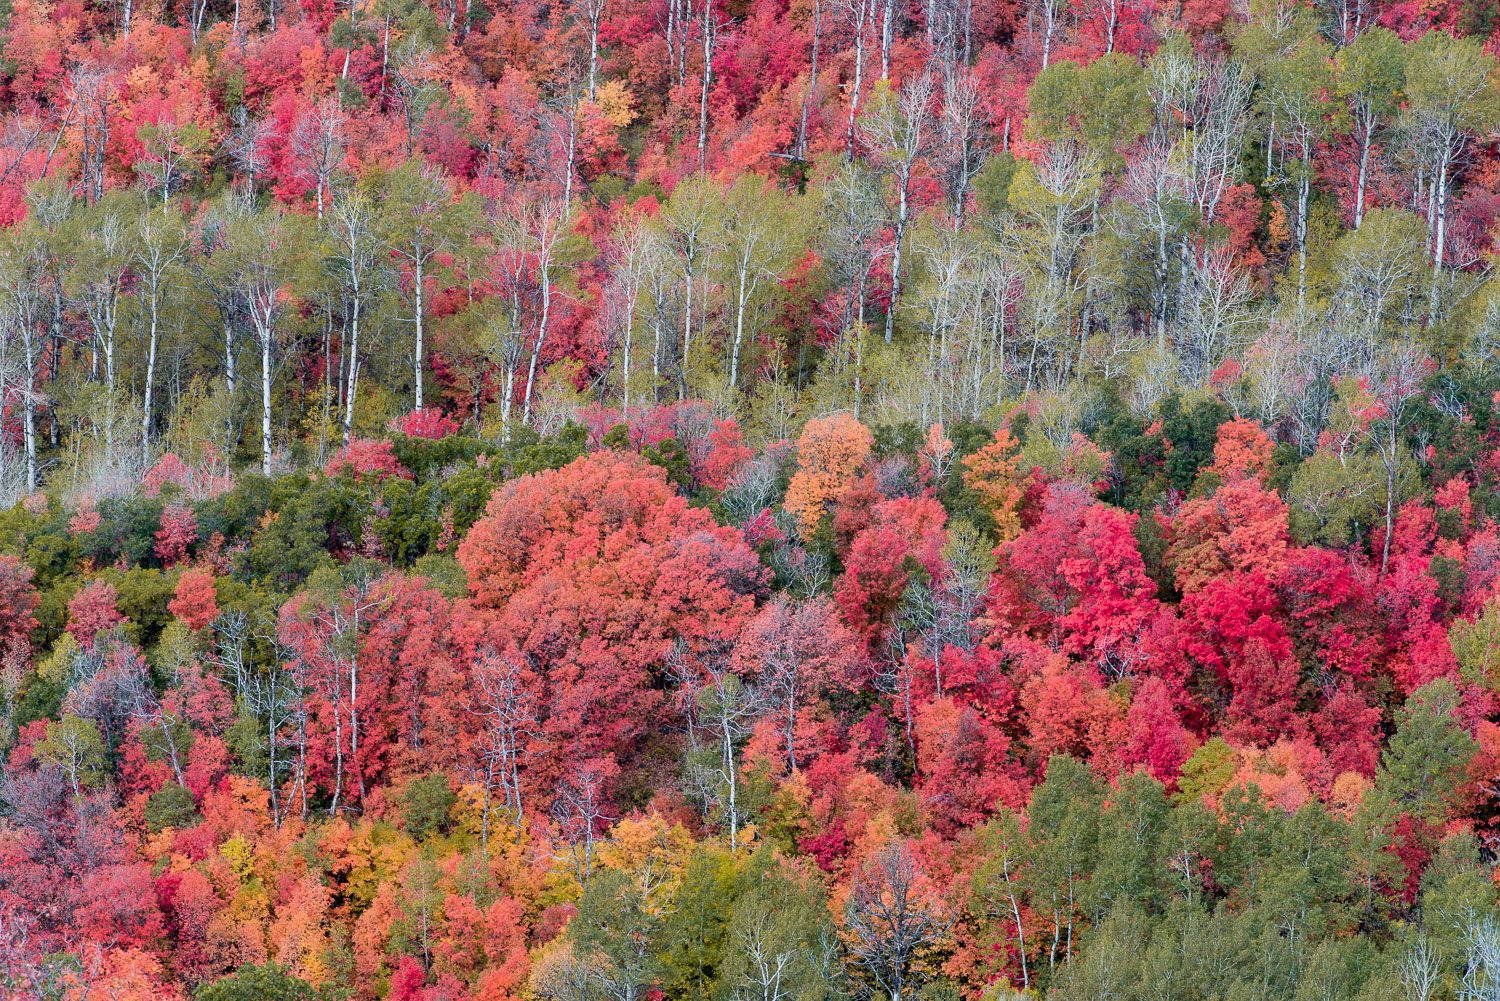 Maples, Aspens, and Oak: Brilliant Fall Foliage near Midway and